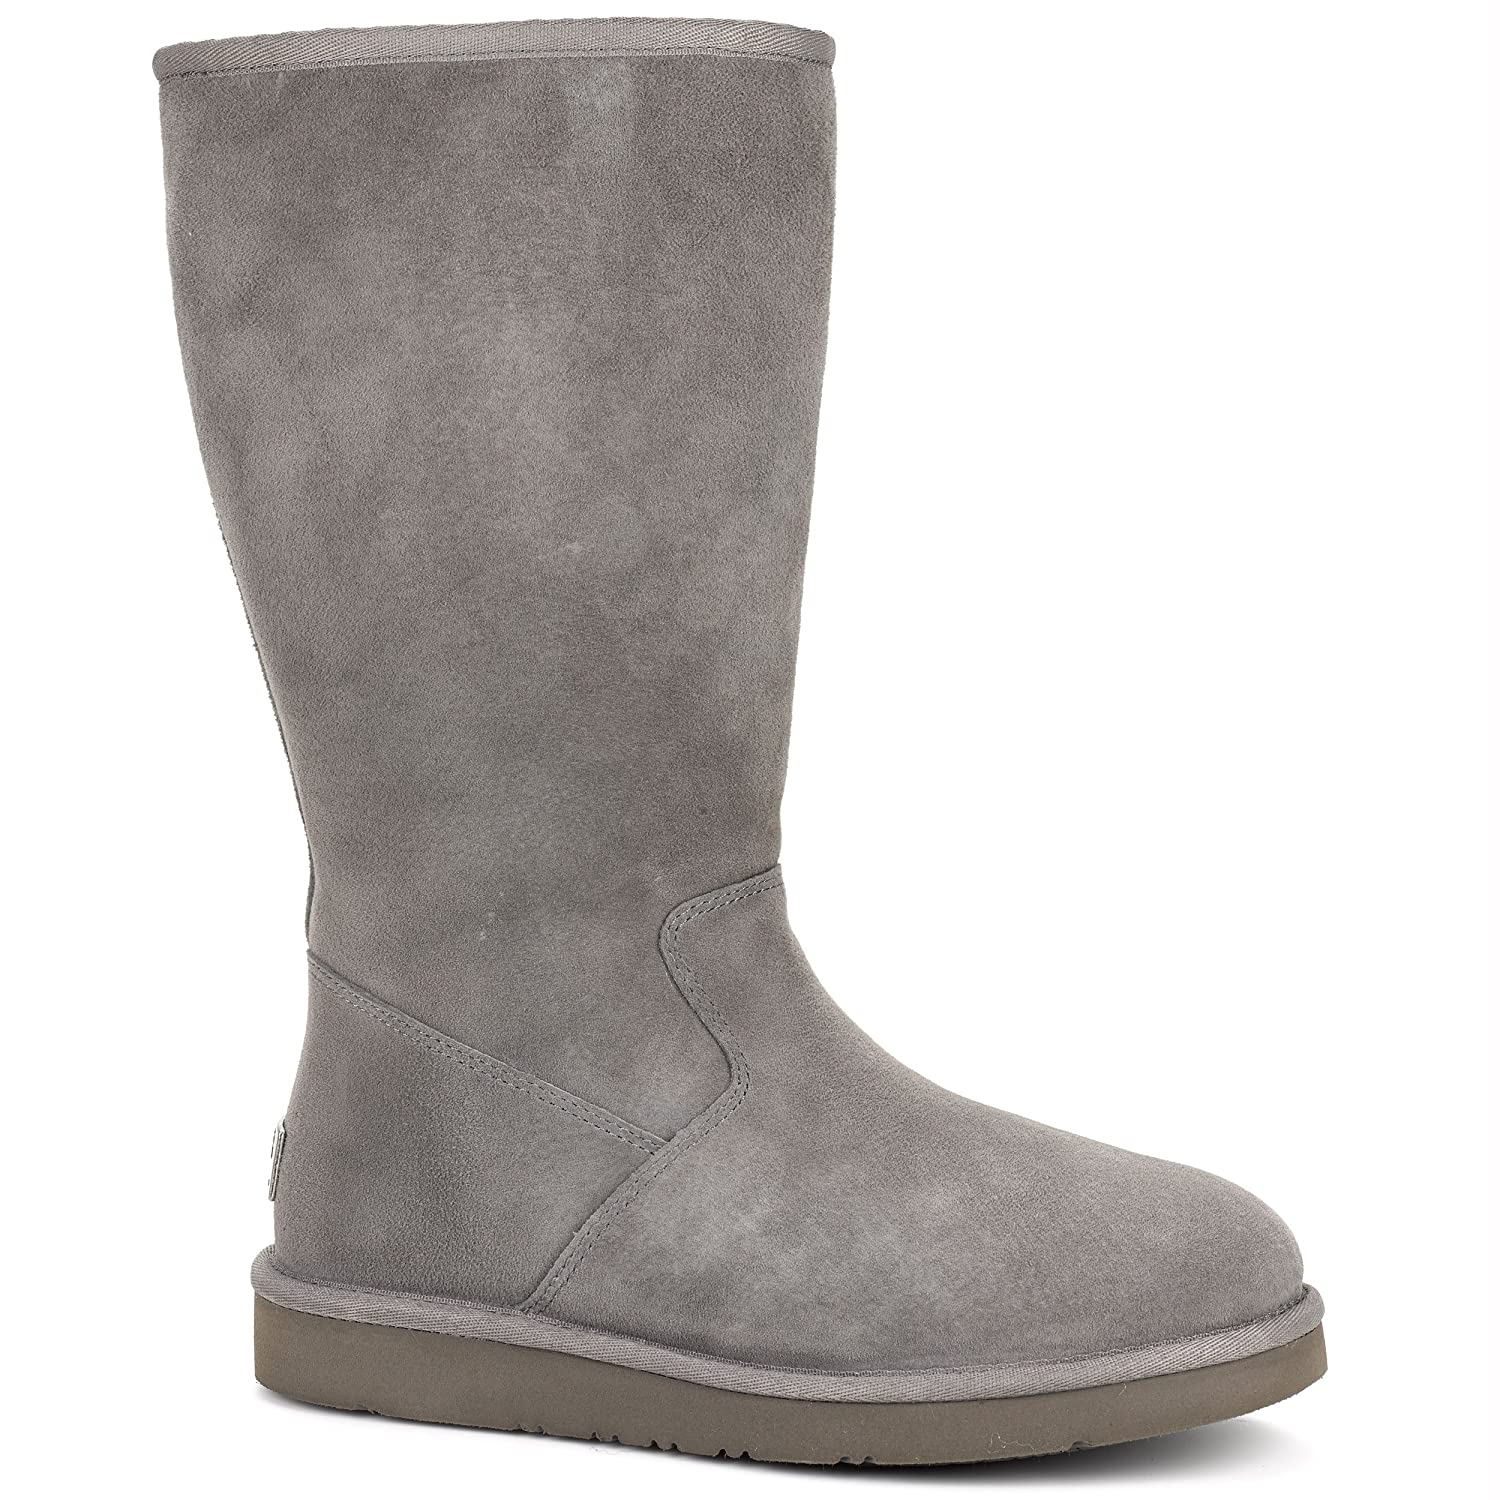 a3ac1fcc63b UGG Women's Sumner Boot Grey Size 11 B(M) US: Amazon.co.uk: Shoes & Bags